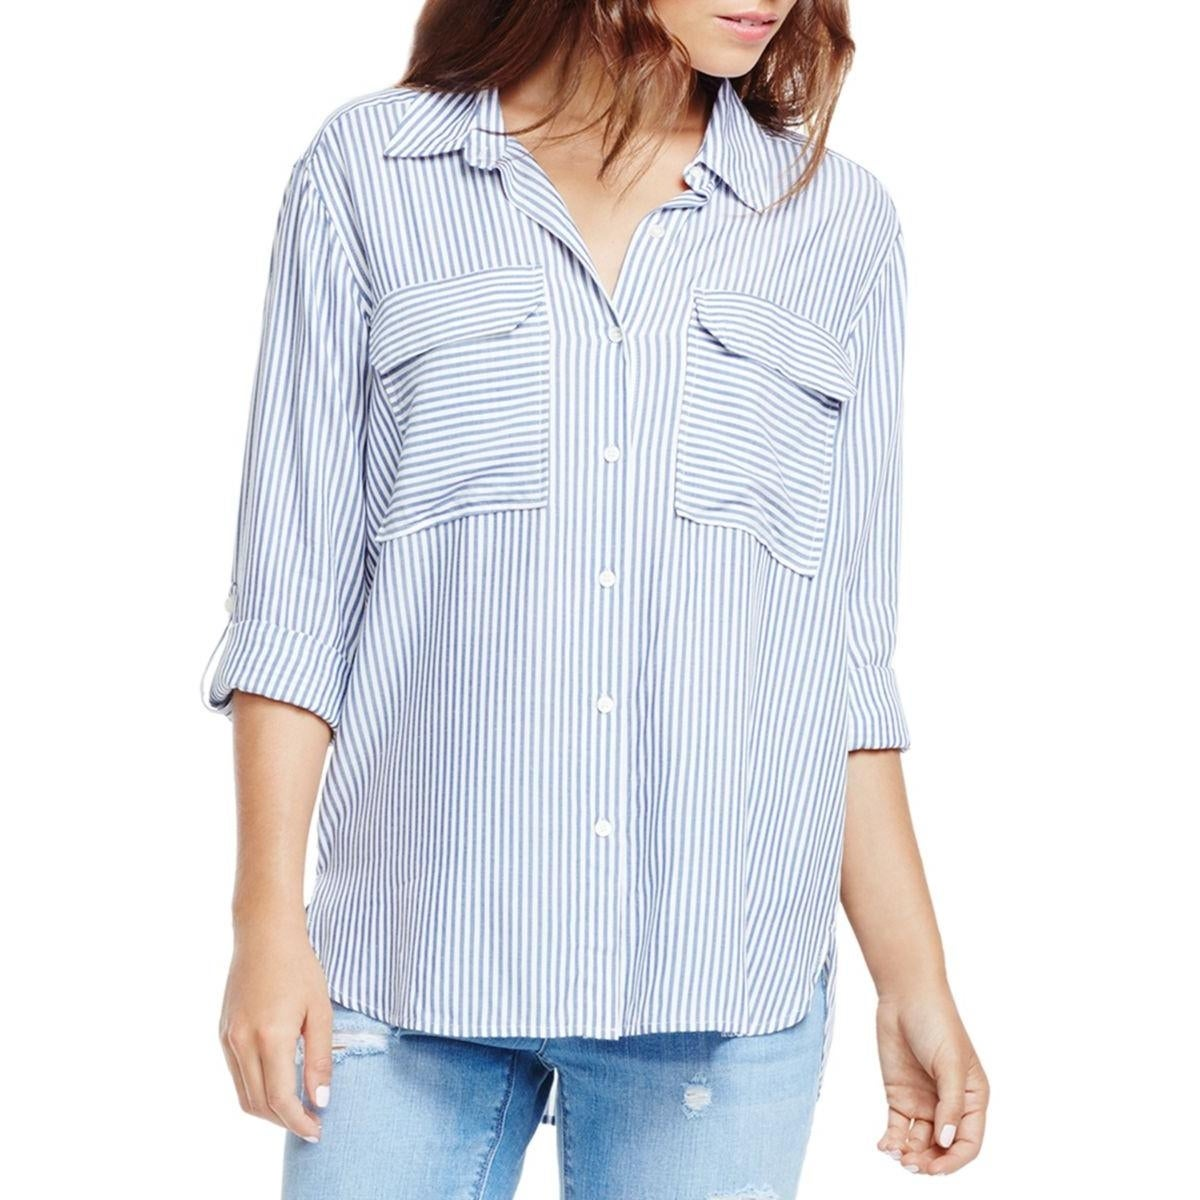 976a0718 Shop Two by Vince Camuto Womens Button-Down Top Woven Oversized - Free  Shipping On Orders Over $45 - Overstock - 14190499